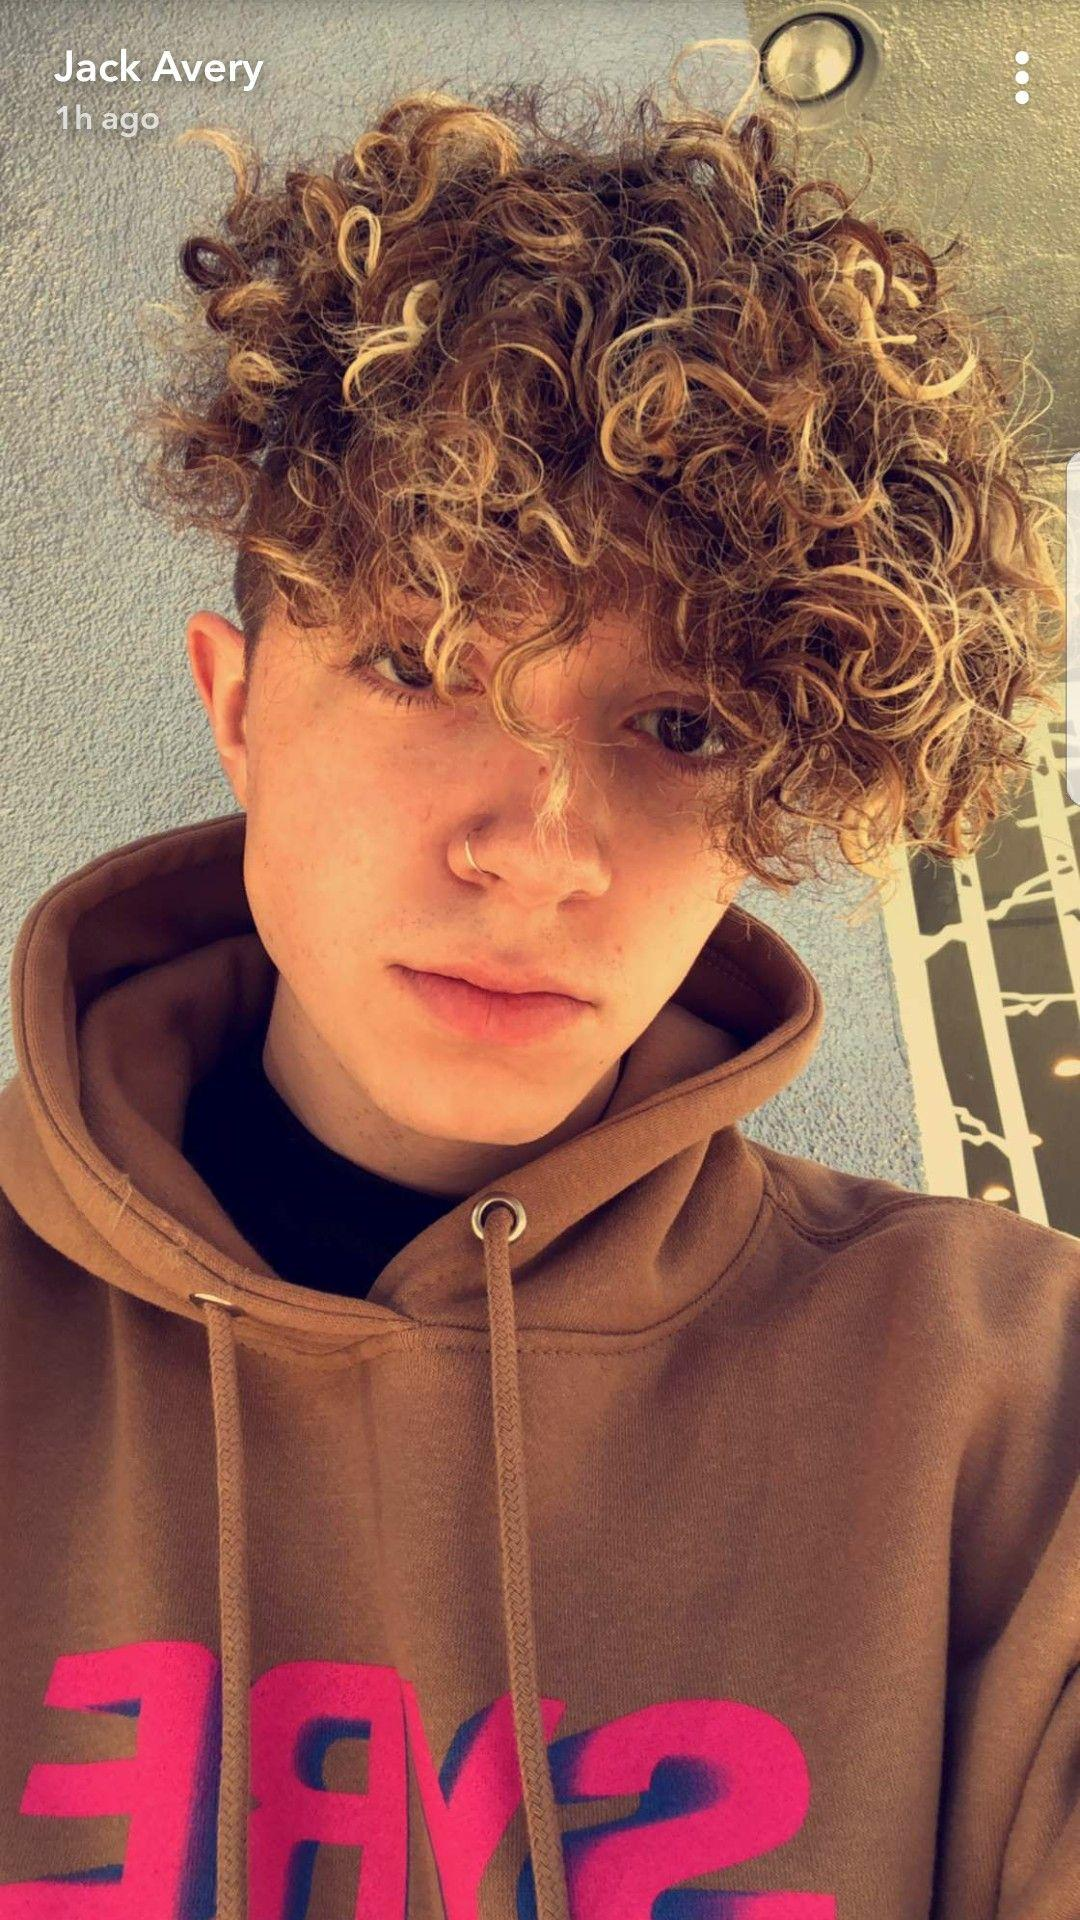 where is jack avery from